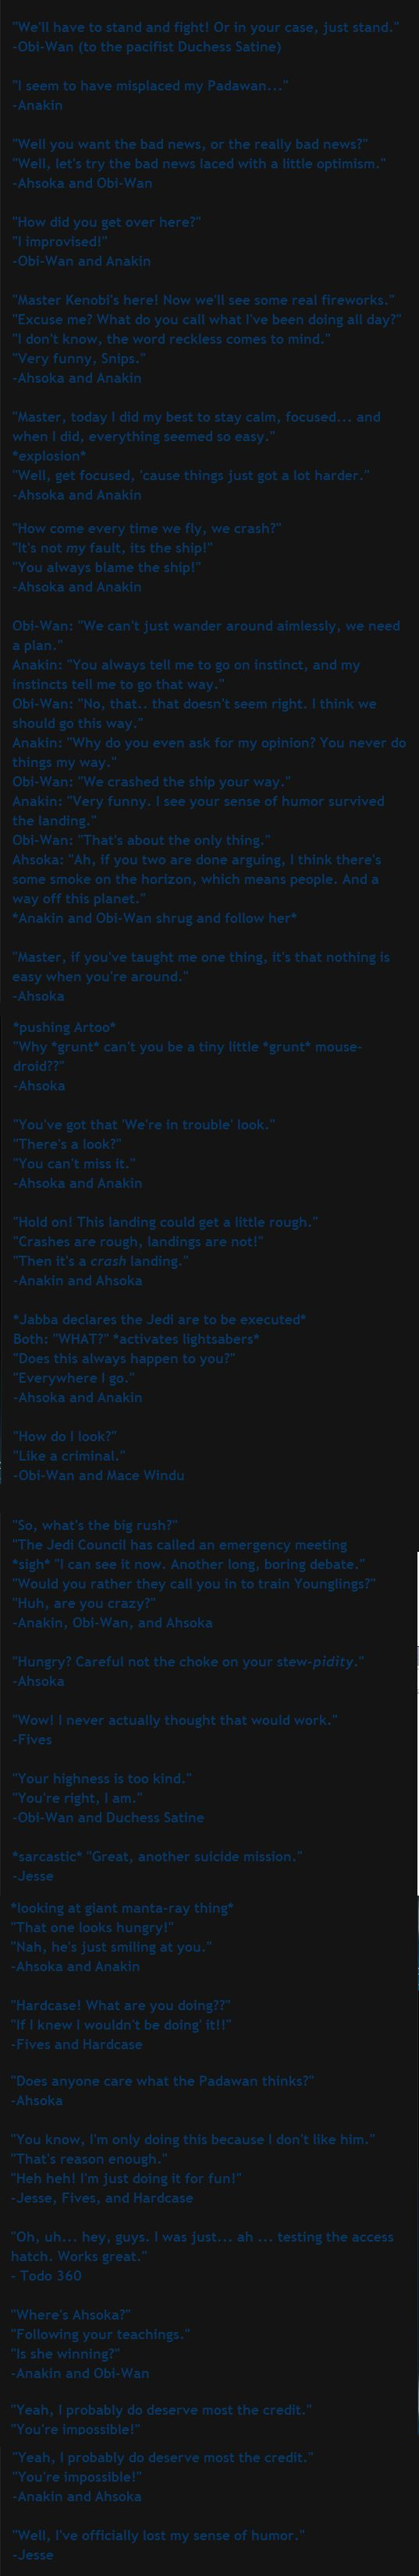 Clone Wars quotes! Some of my favorites =)